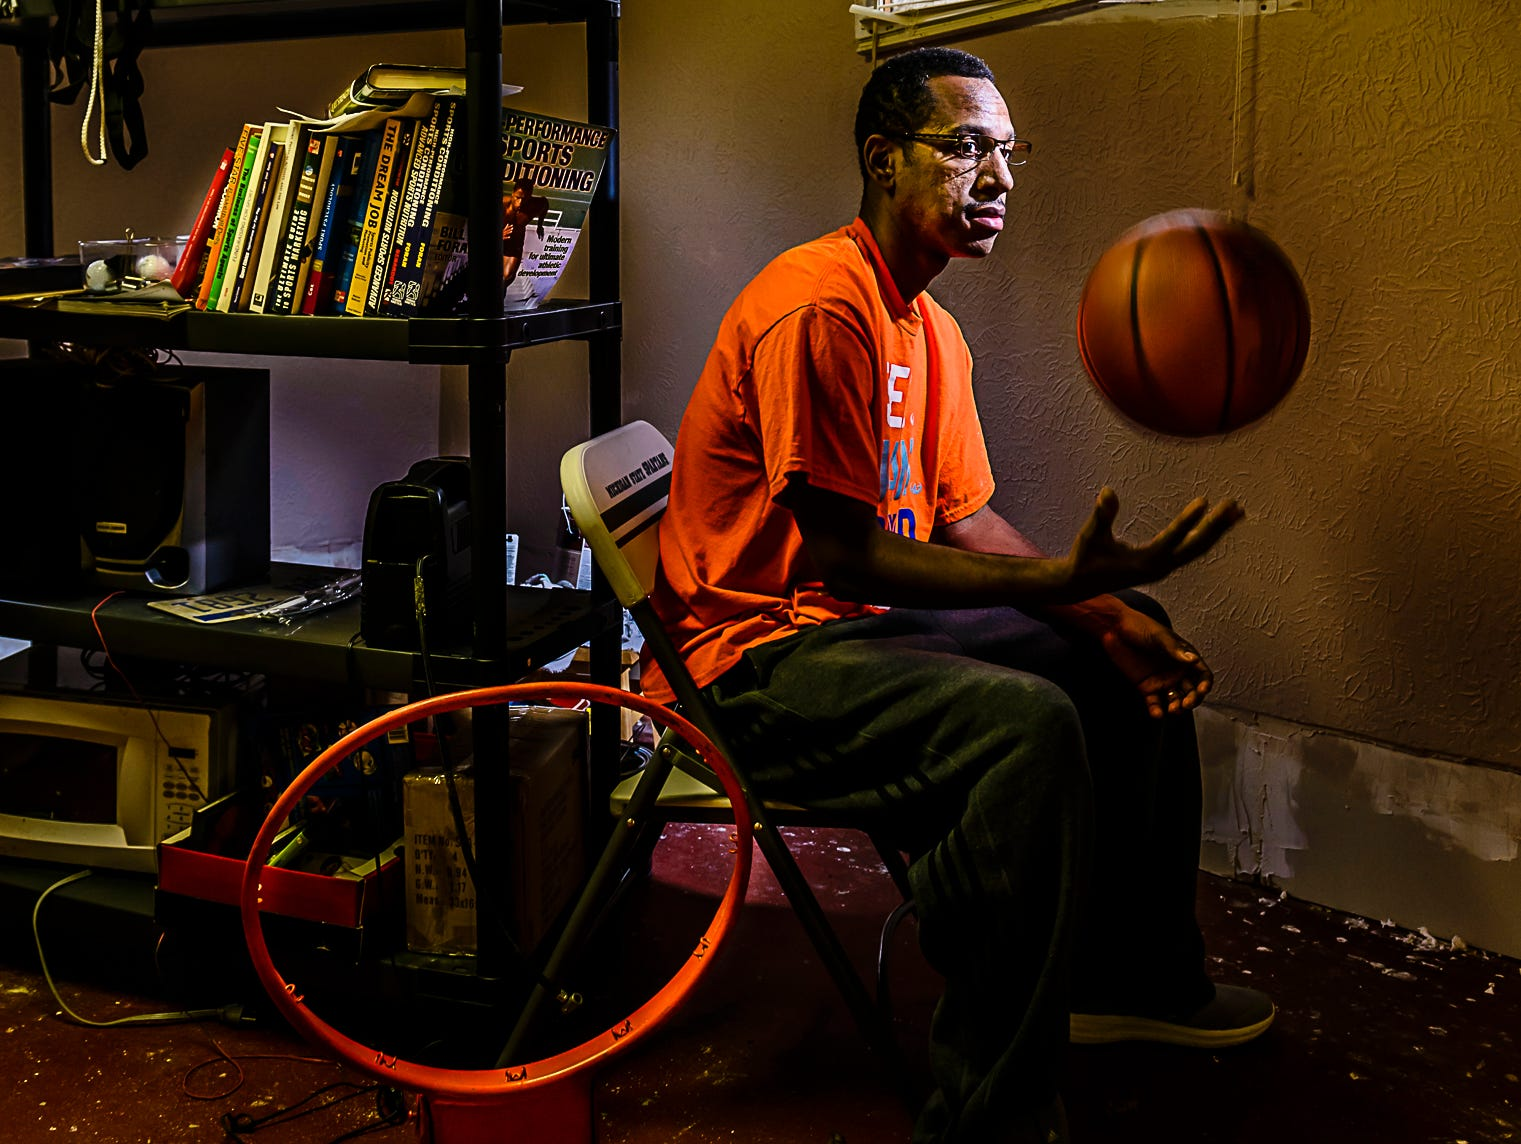 Former Waverly Girl's Basketball Head Coach ,T.J. Hawkins, sits in a stoarge room where he has moved all his athletic paraphenalia at his home in Lansing Thursday January 19, 2017. Hawkins suffered a stroke that forced him to leave his Waverly coaching position and is struggling to recover and regain a coaching position. KEVIN W. FOWLER PHOTO